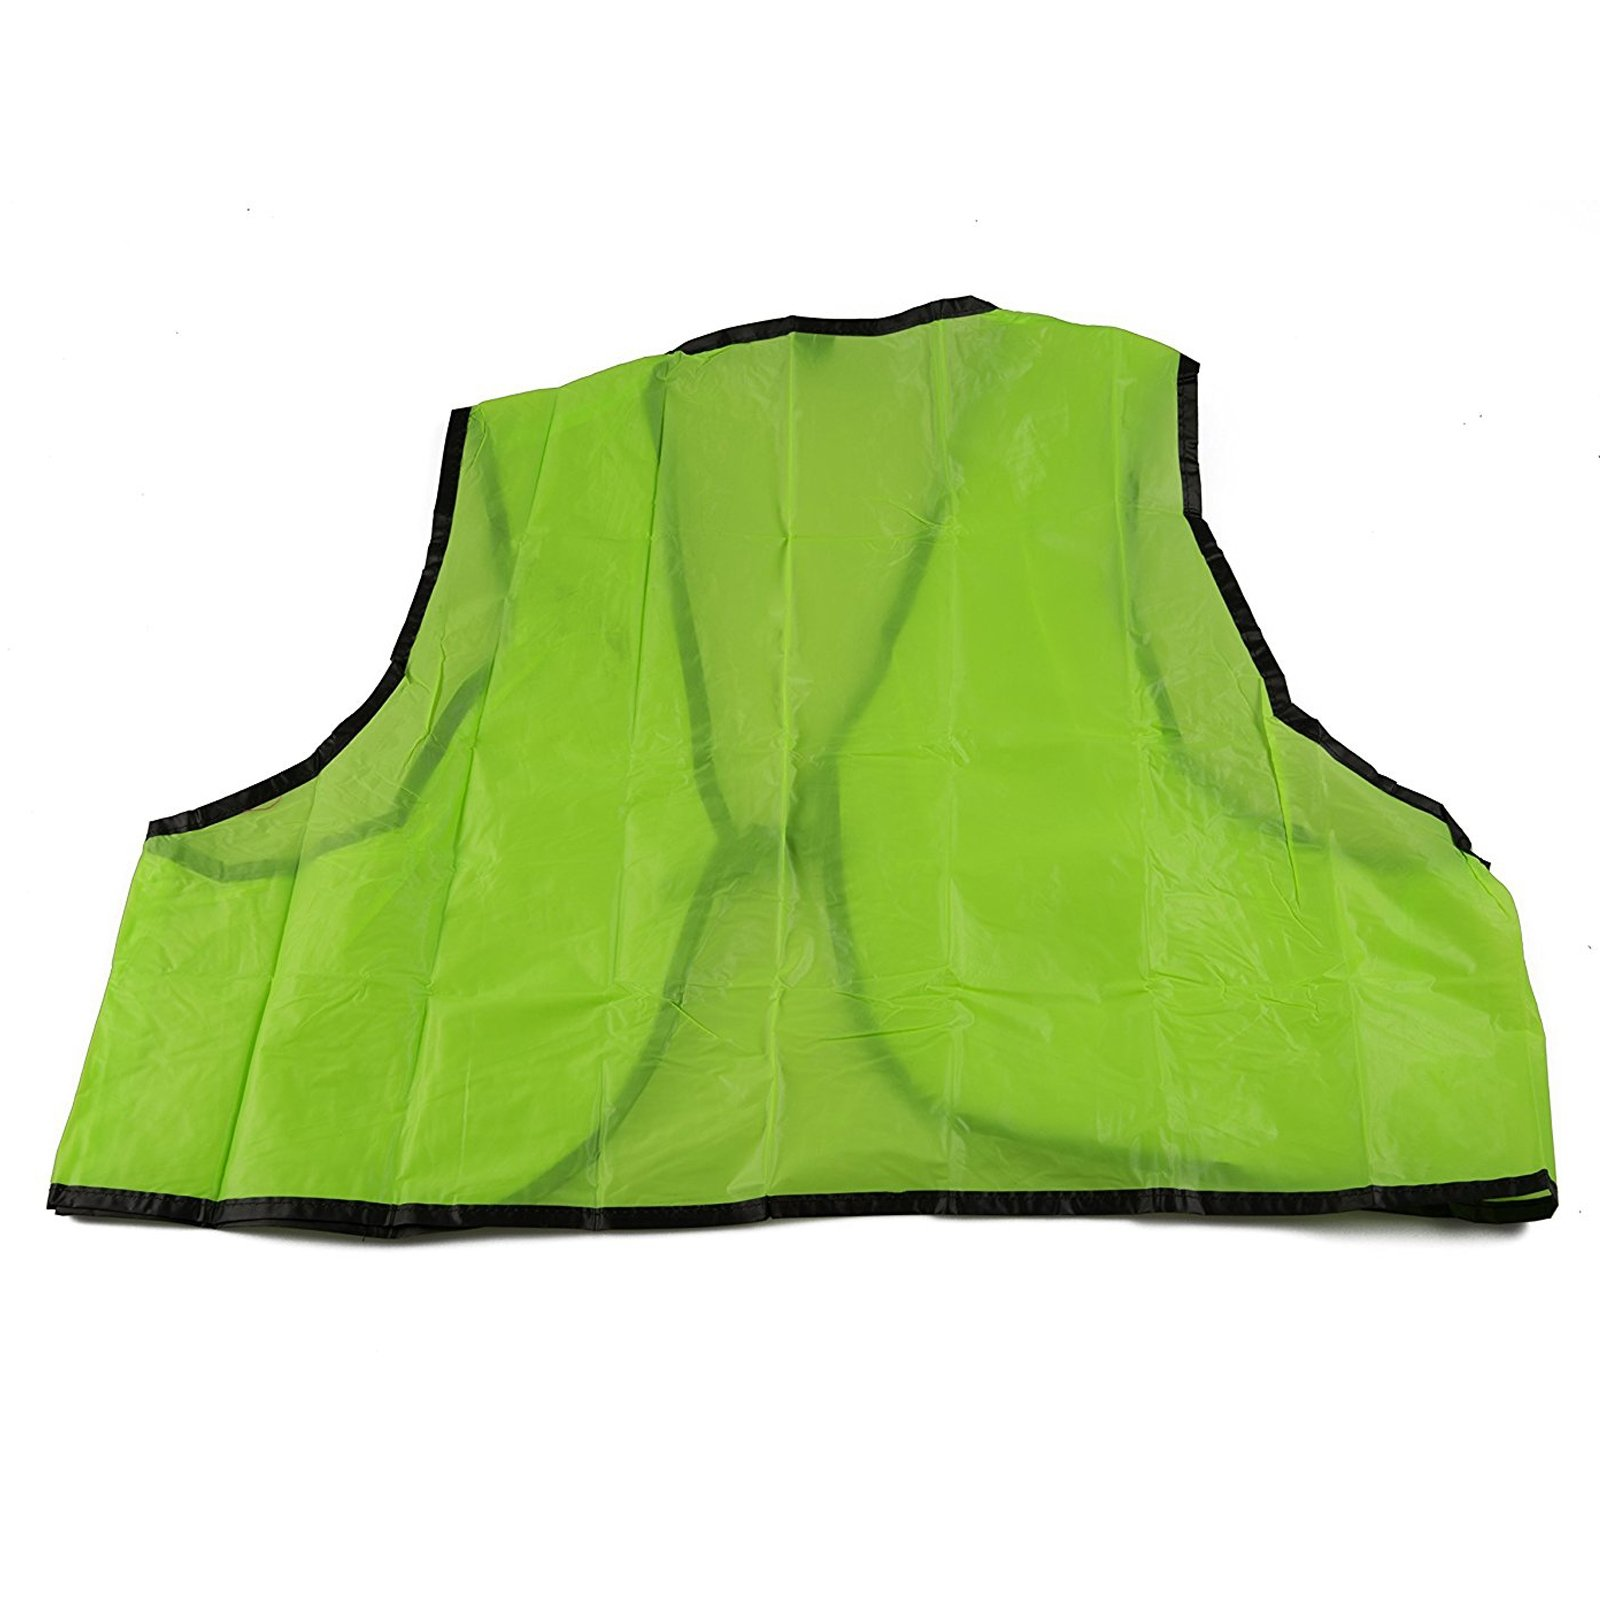 ASR Outdoor Safety Disposable Vest High Visibility One Size Fits Most Lime Green